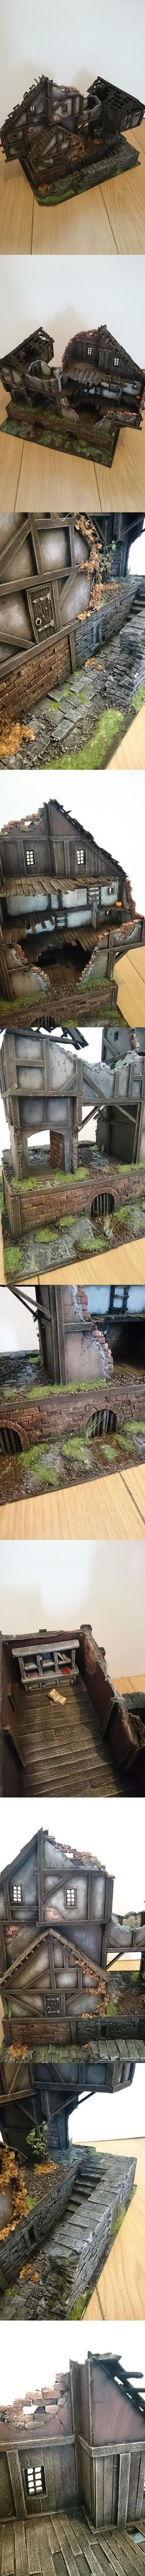 scratchbuilt fantasy ruined house on brick plinth